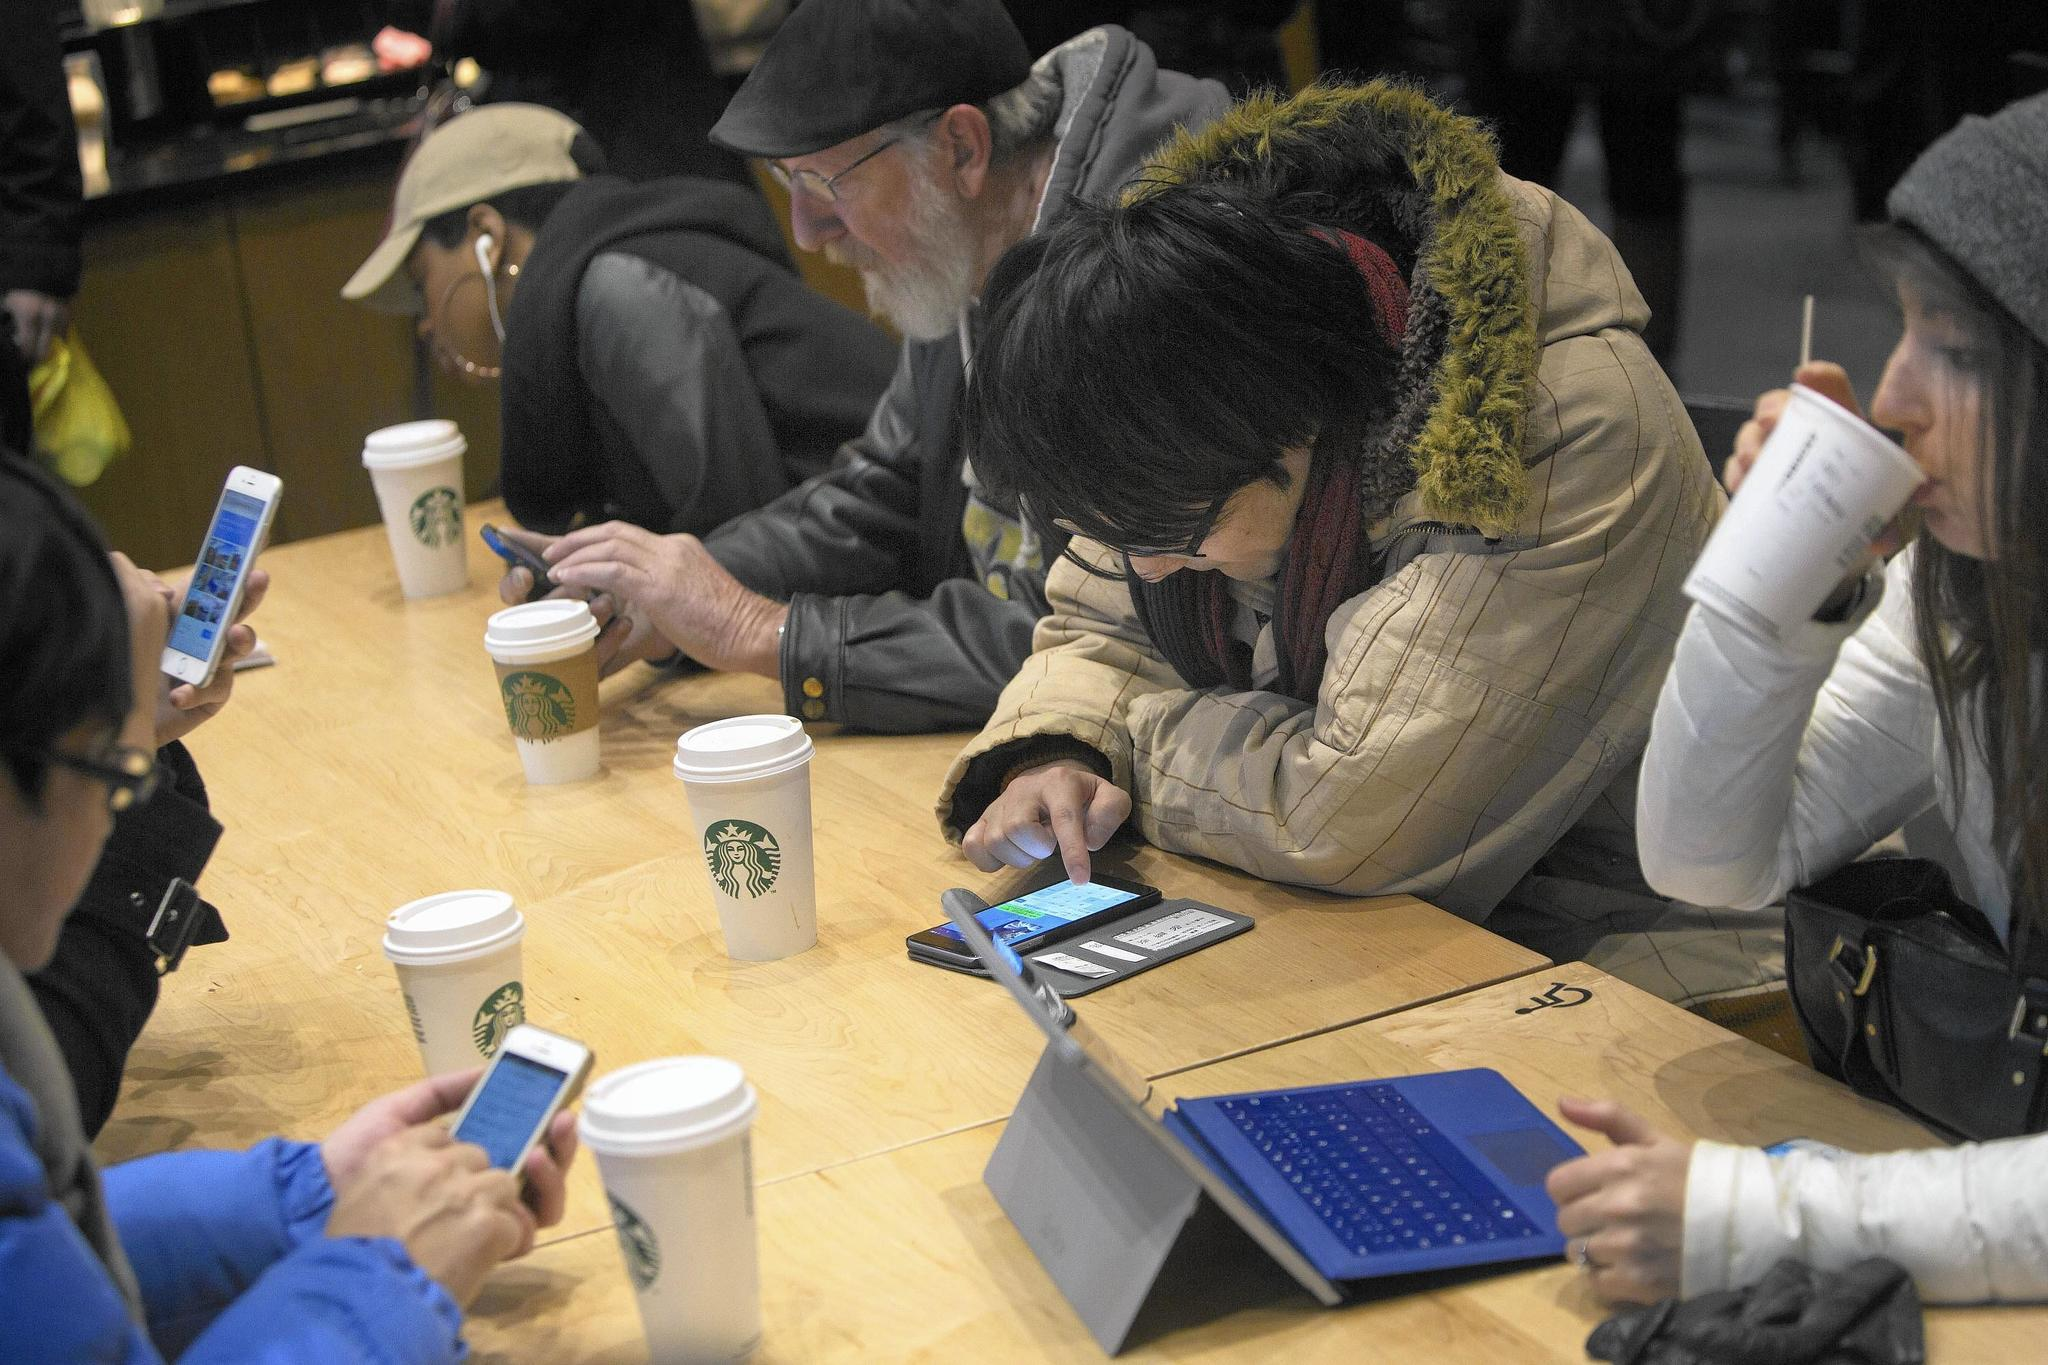 Look how much coffee millennials are drinking - The Morning Call